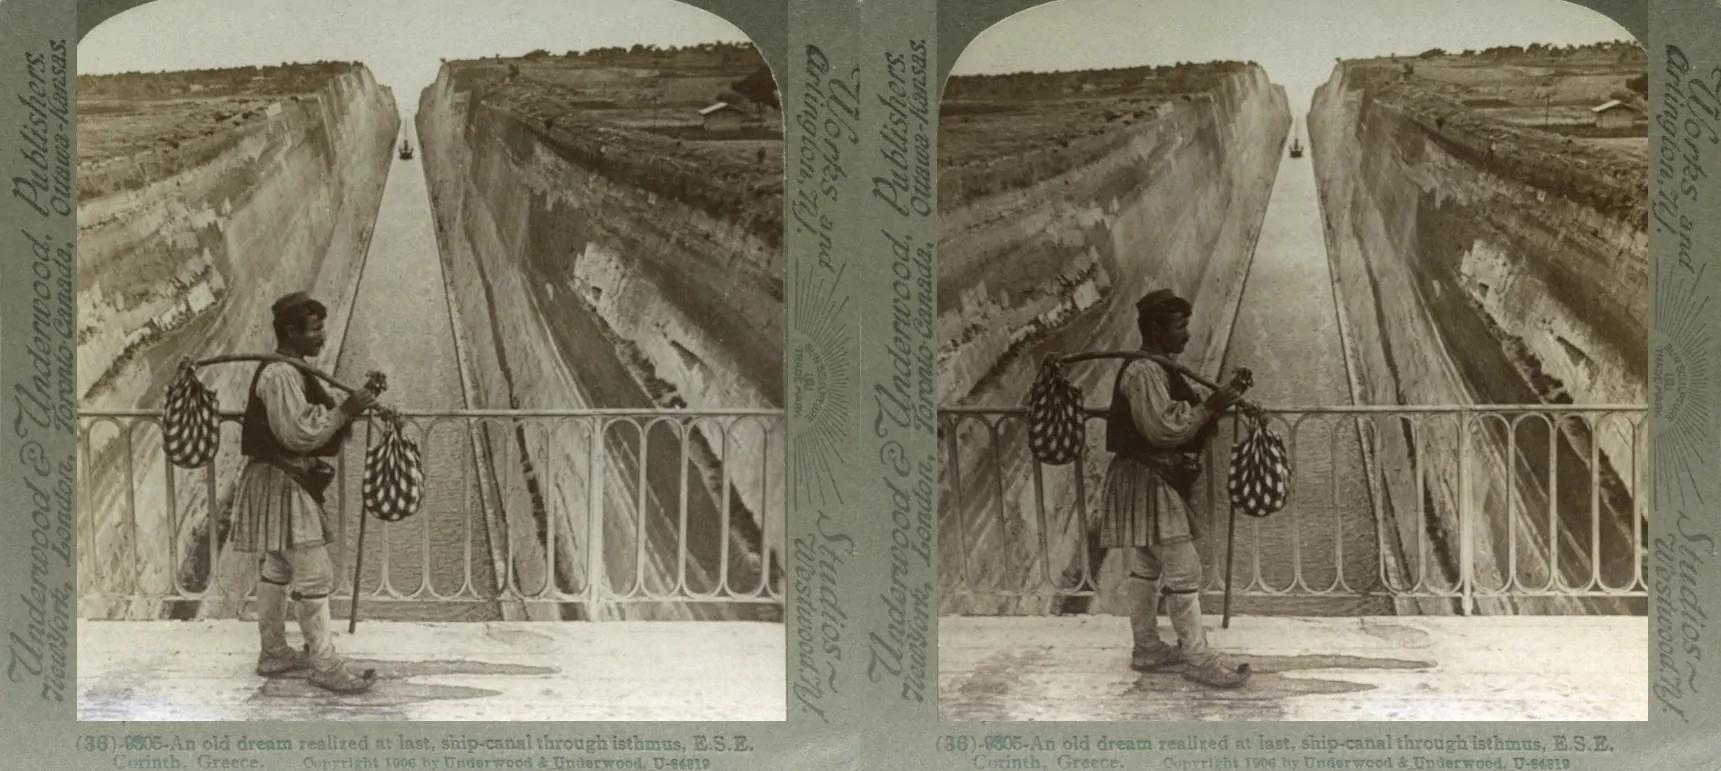 Reformatting Old Stereoviews